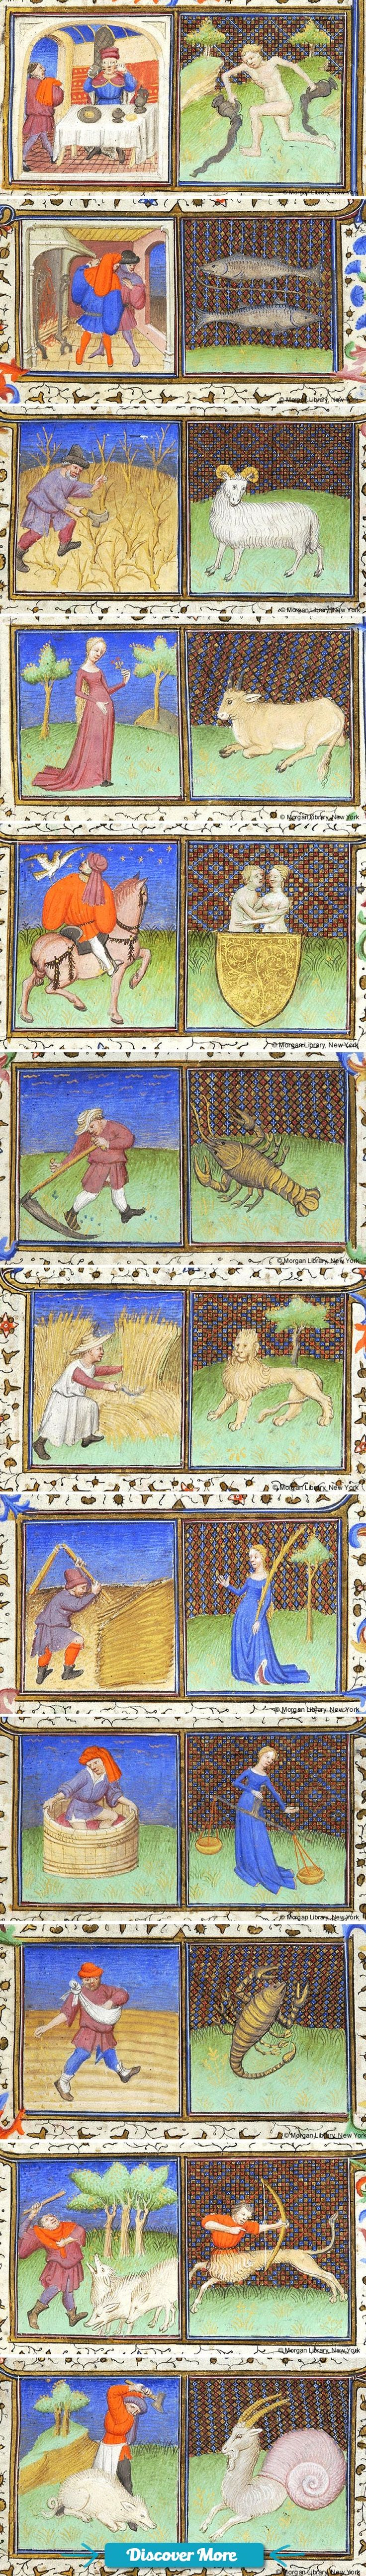 [A Fortune Teller Revealed] Trump's Ugly Arcanum Of His Presidential Journey, Click Here To Learn More Signs of the Zodiac | Book of Hours | France, Paris | ca. 1425-1430 | The Morgan Library  Museum #Astrology #divination #horoscopes #Zodiac #Numerology #Cartomancy #Geomancy